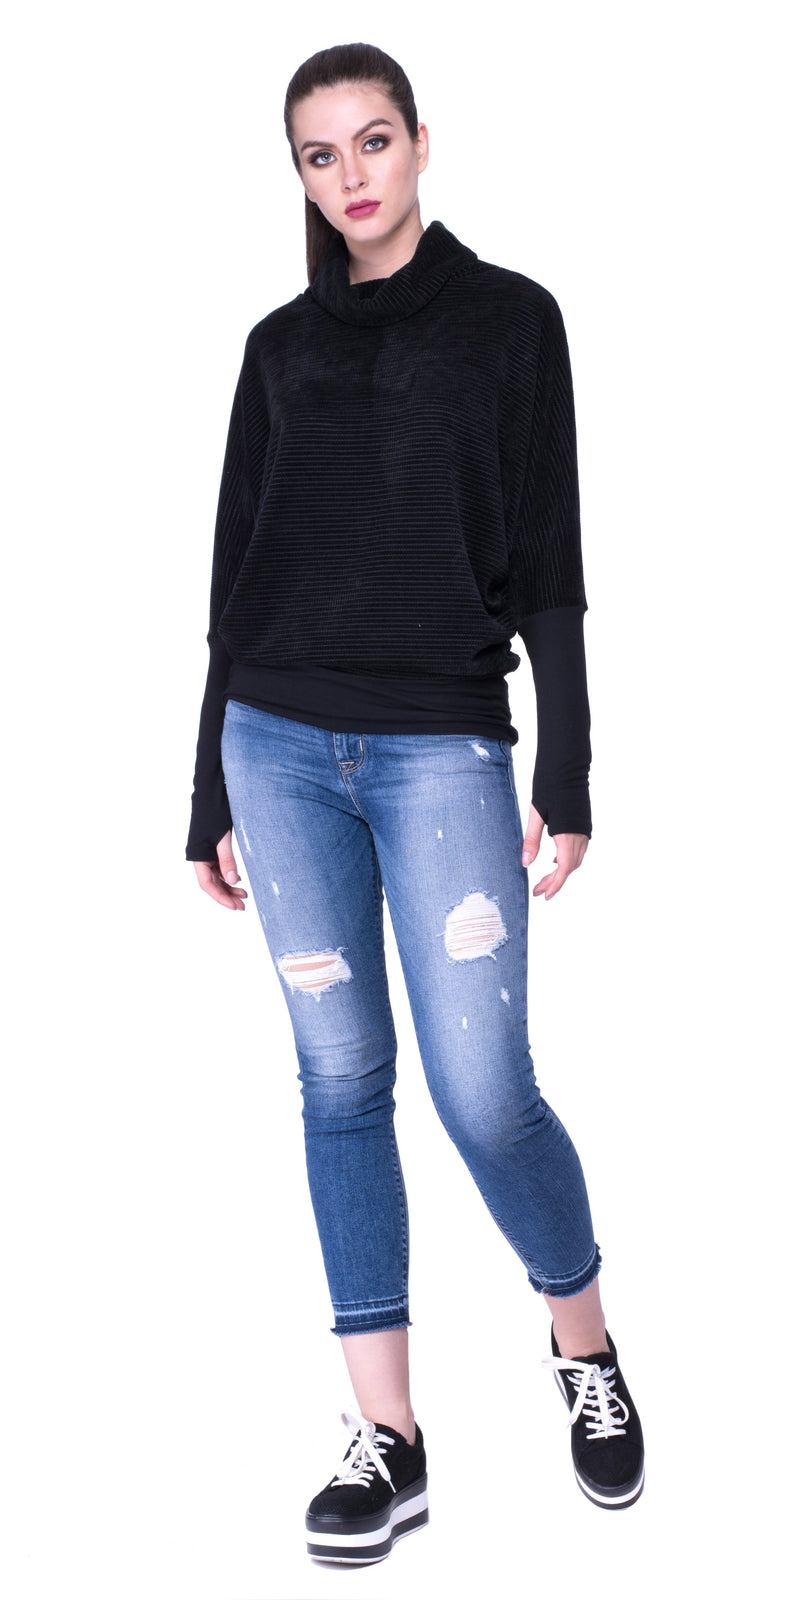 Ophelia Turtle Neck Sweater